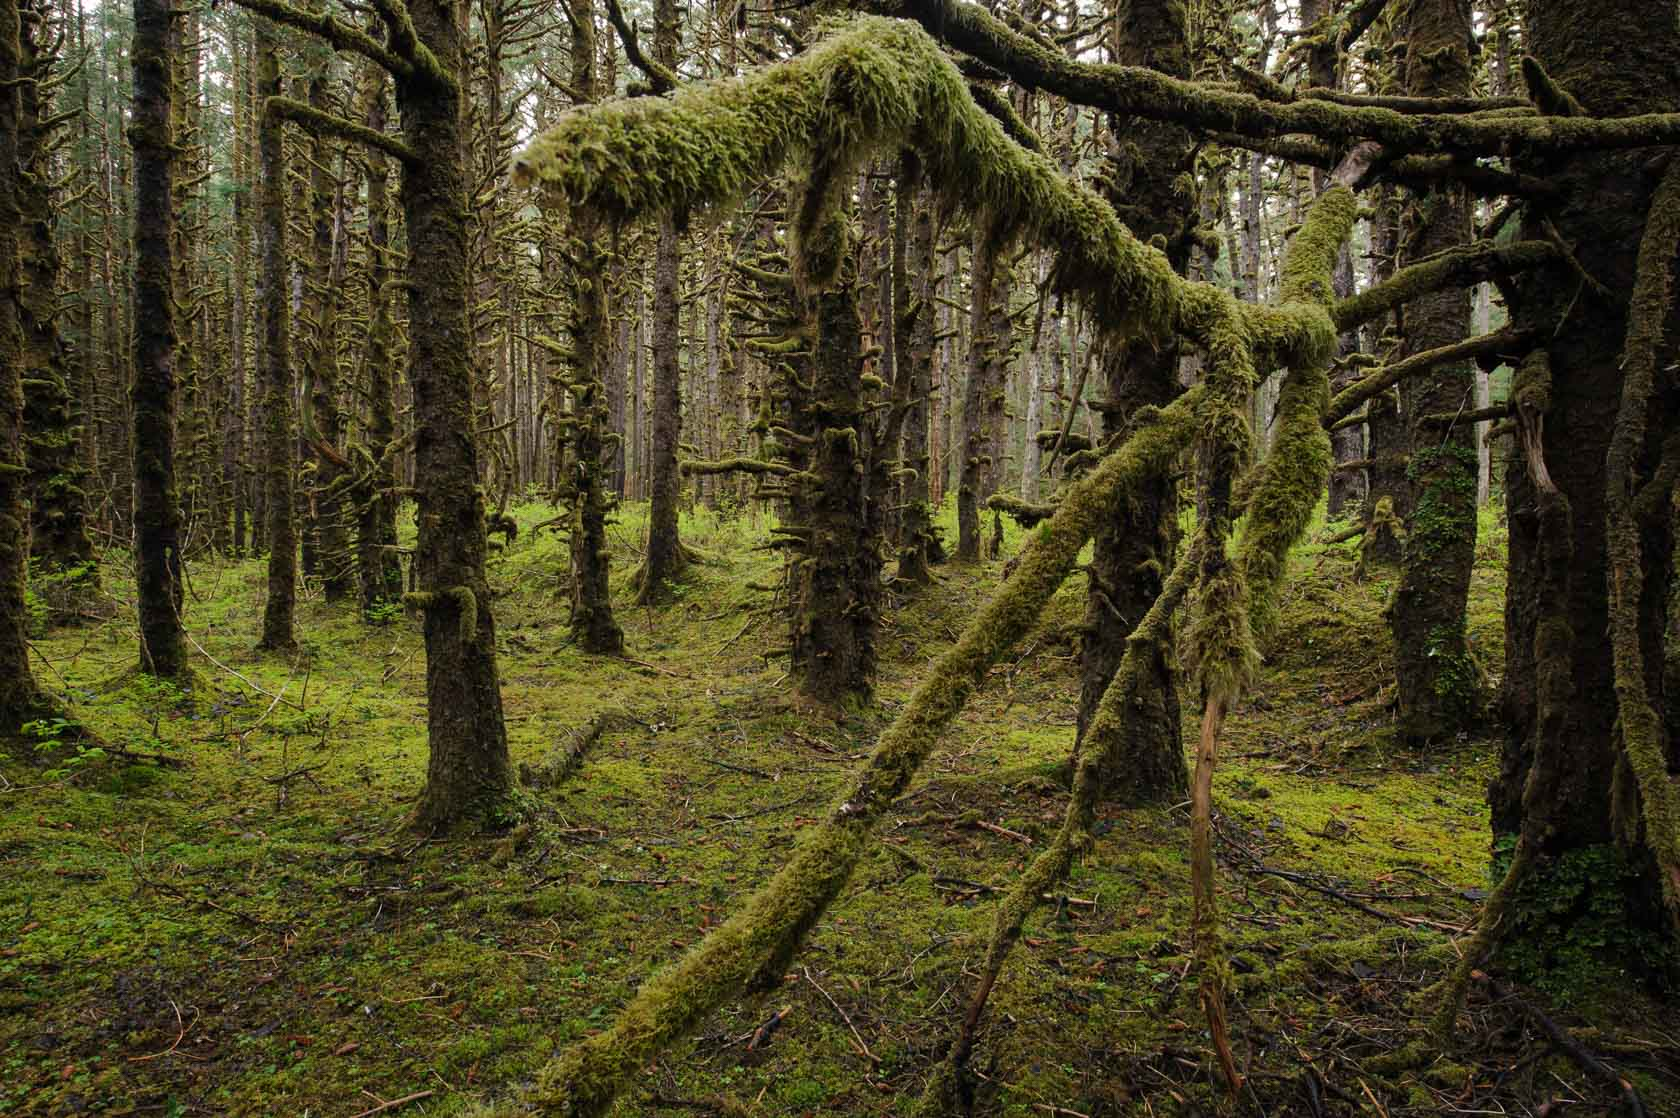 Coastal Rainforest, Yakutat, Alaska